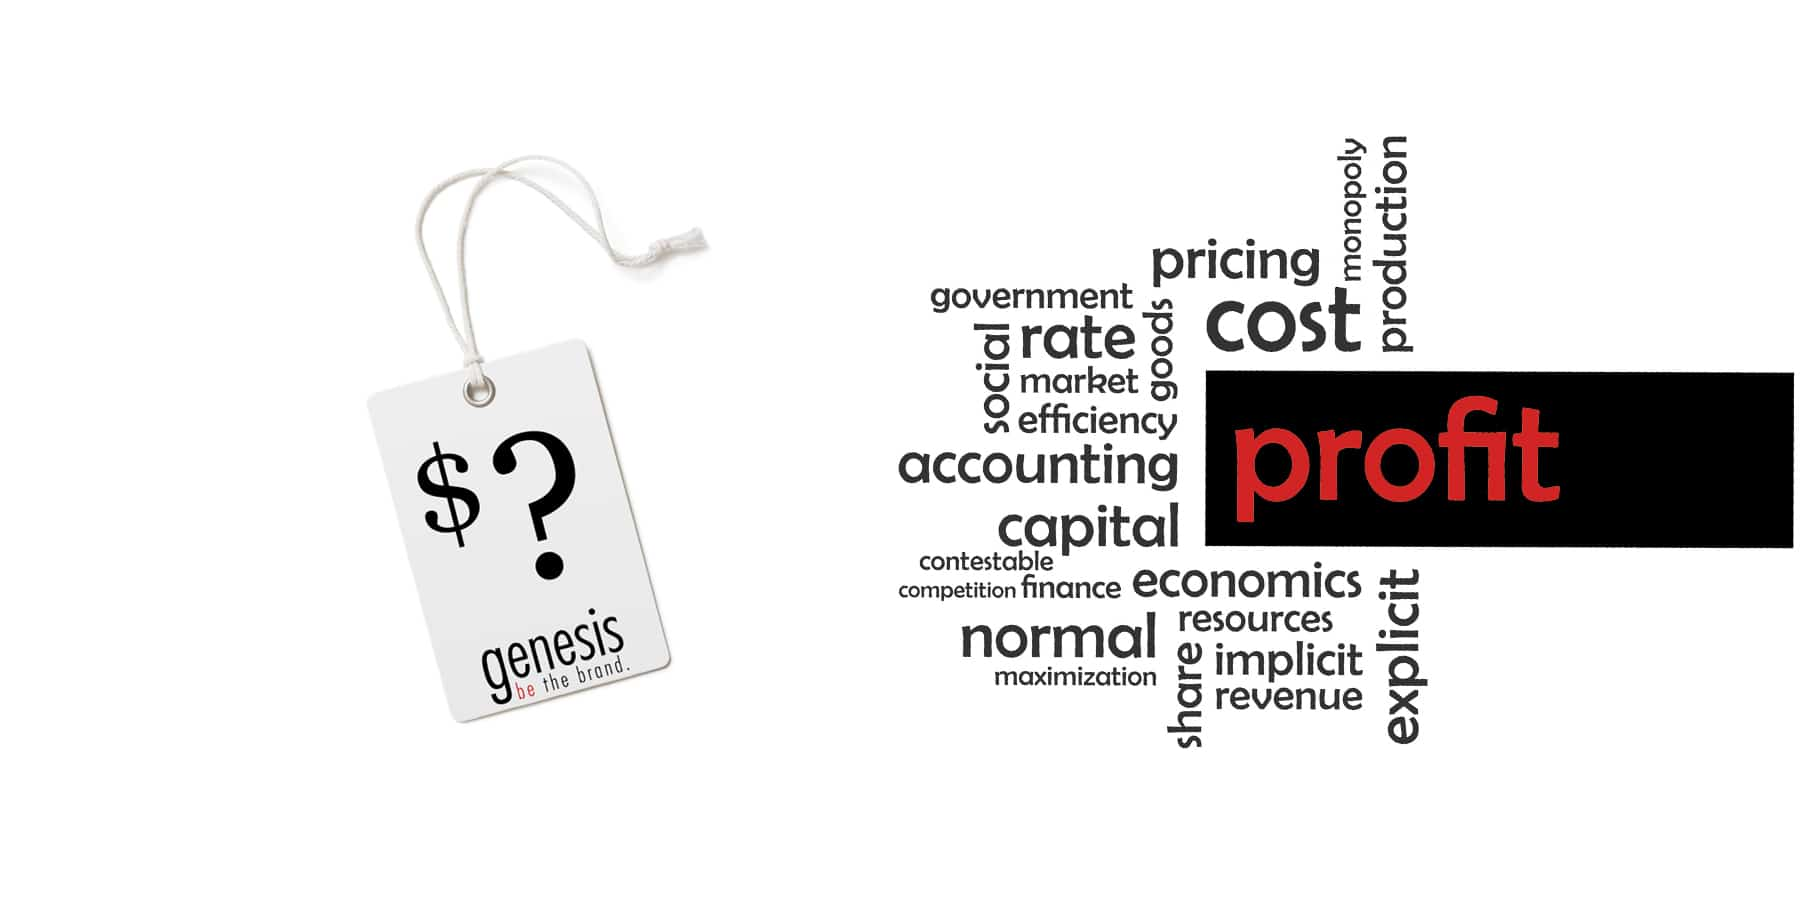 4 ways to determine your private label retail pricing